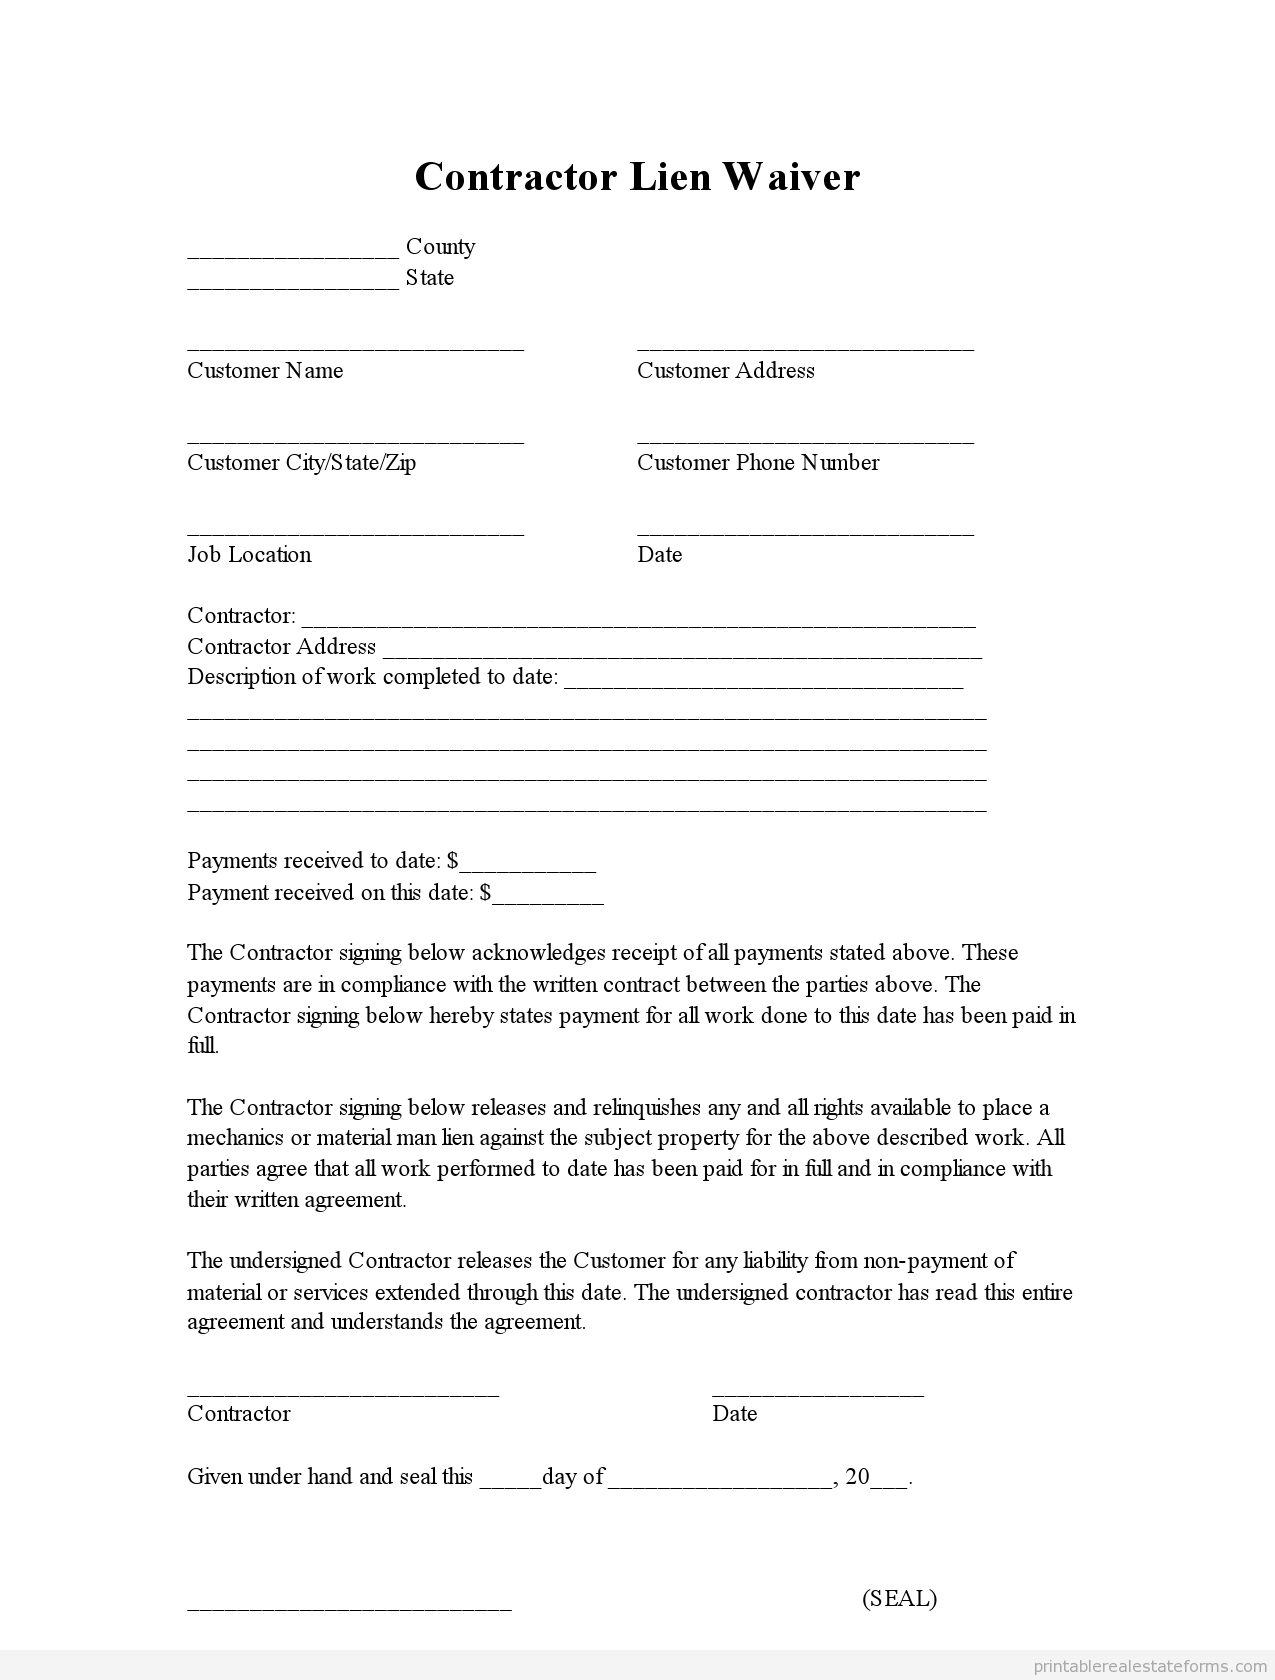 Subcontractor Resume Sample Sample Printable Contractor Lien Waiver Form Printable